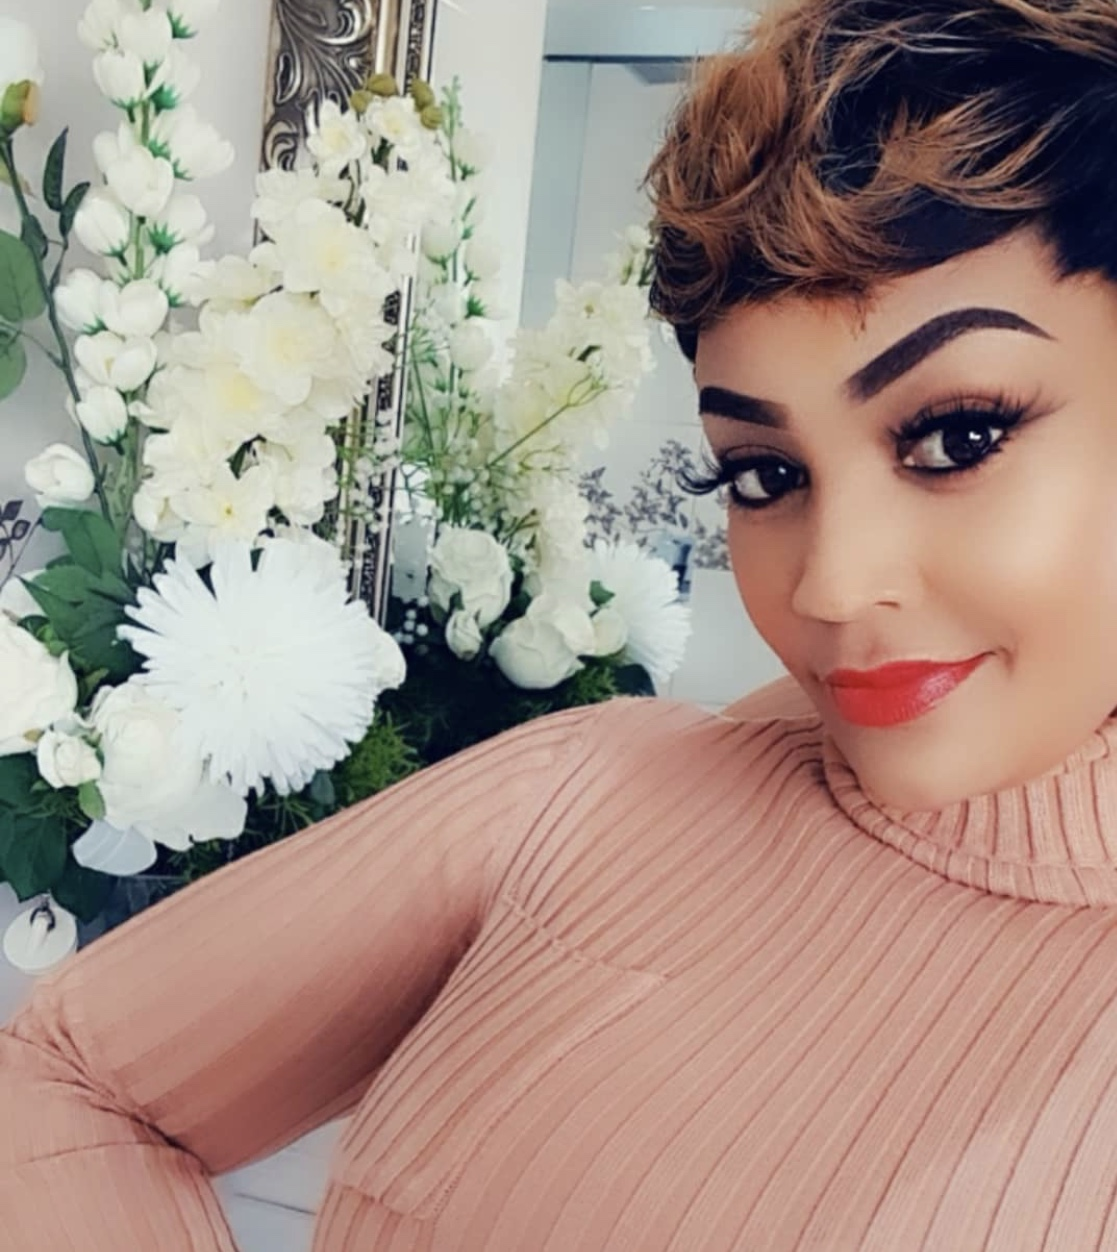 Zari Hassan leaves tongues wagging after doing this for her new man!